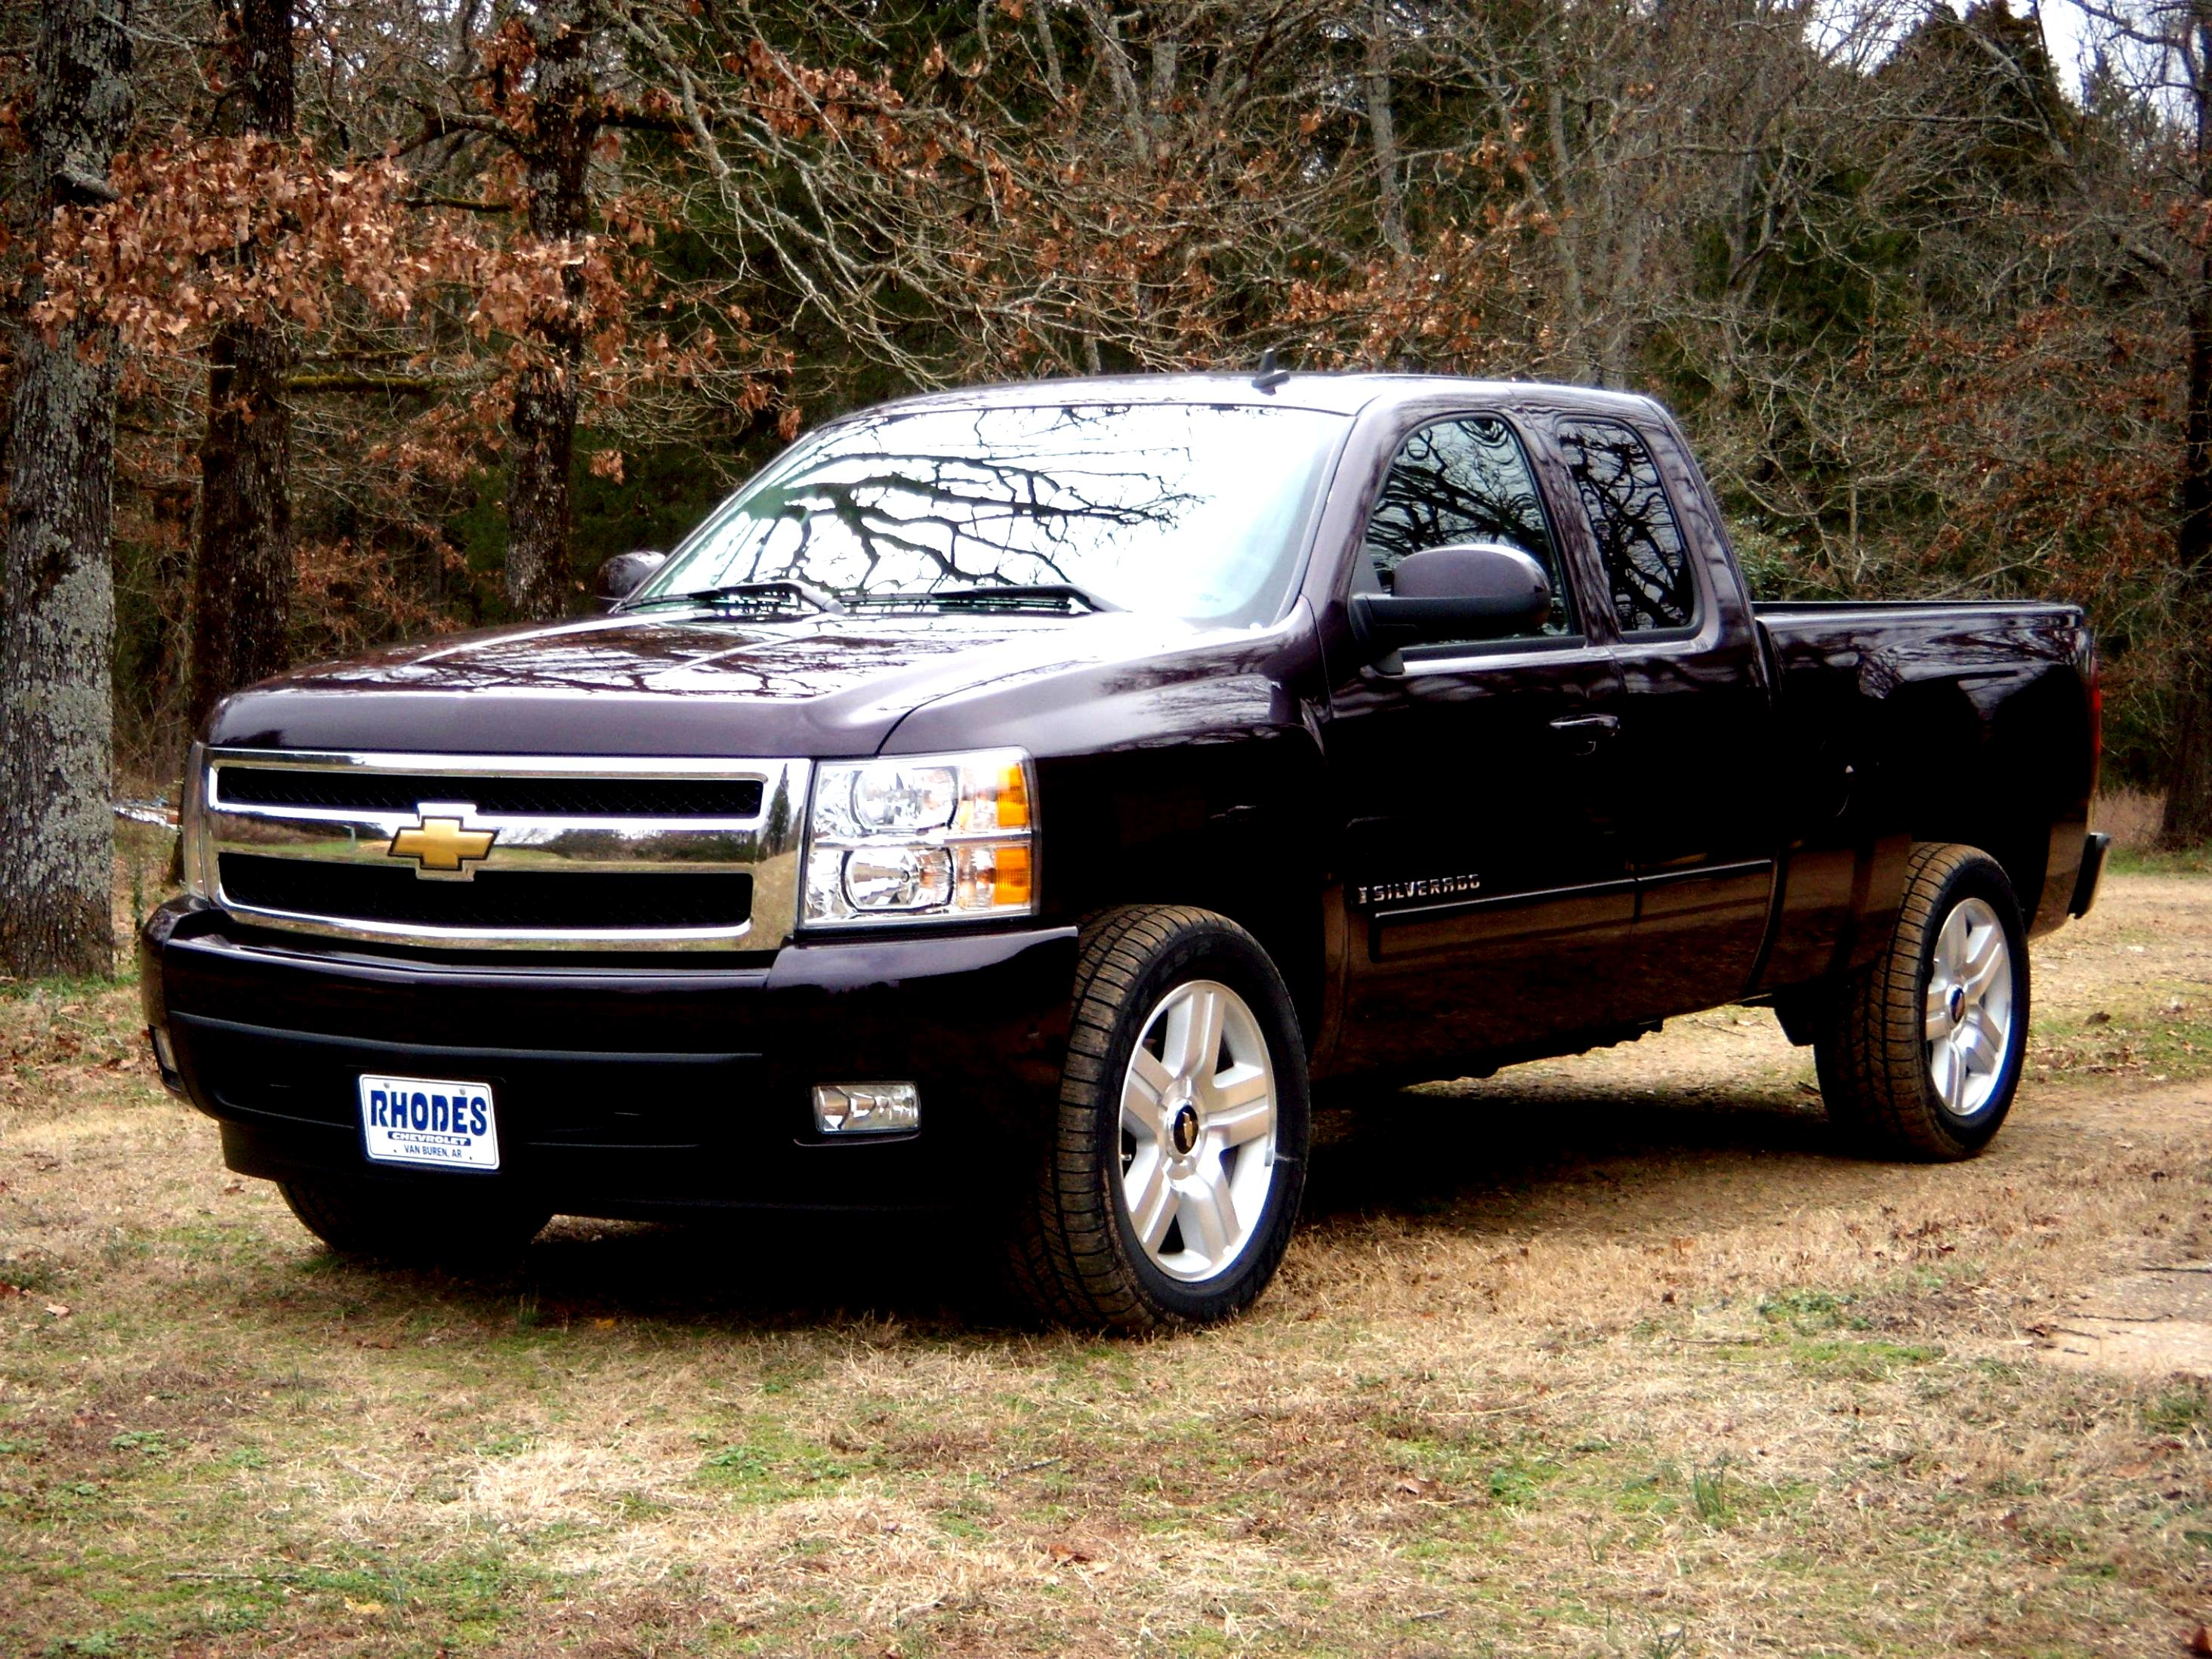 Chevrolet Silverado 2500HD Regular Cab 2008 #21